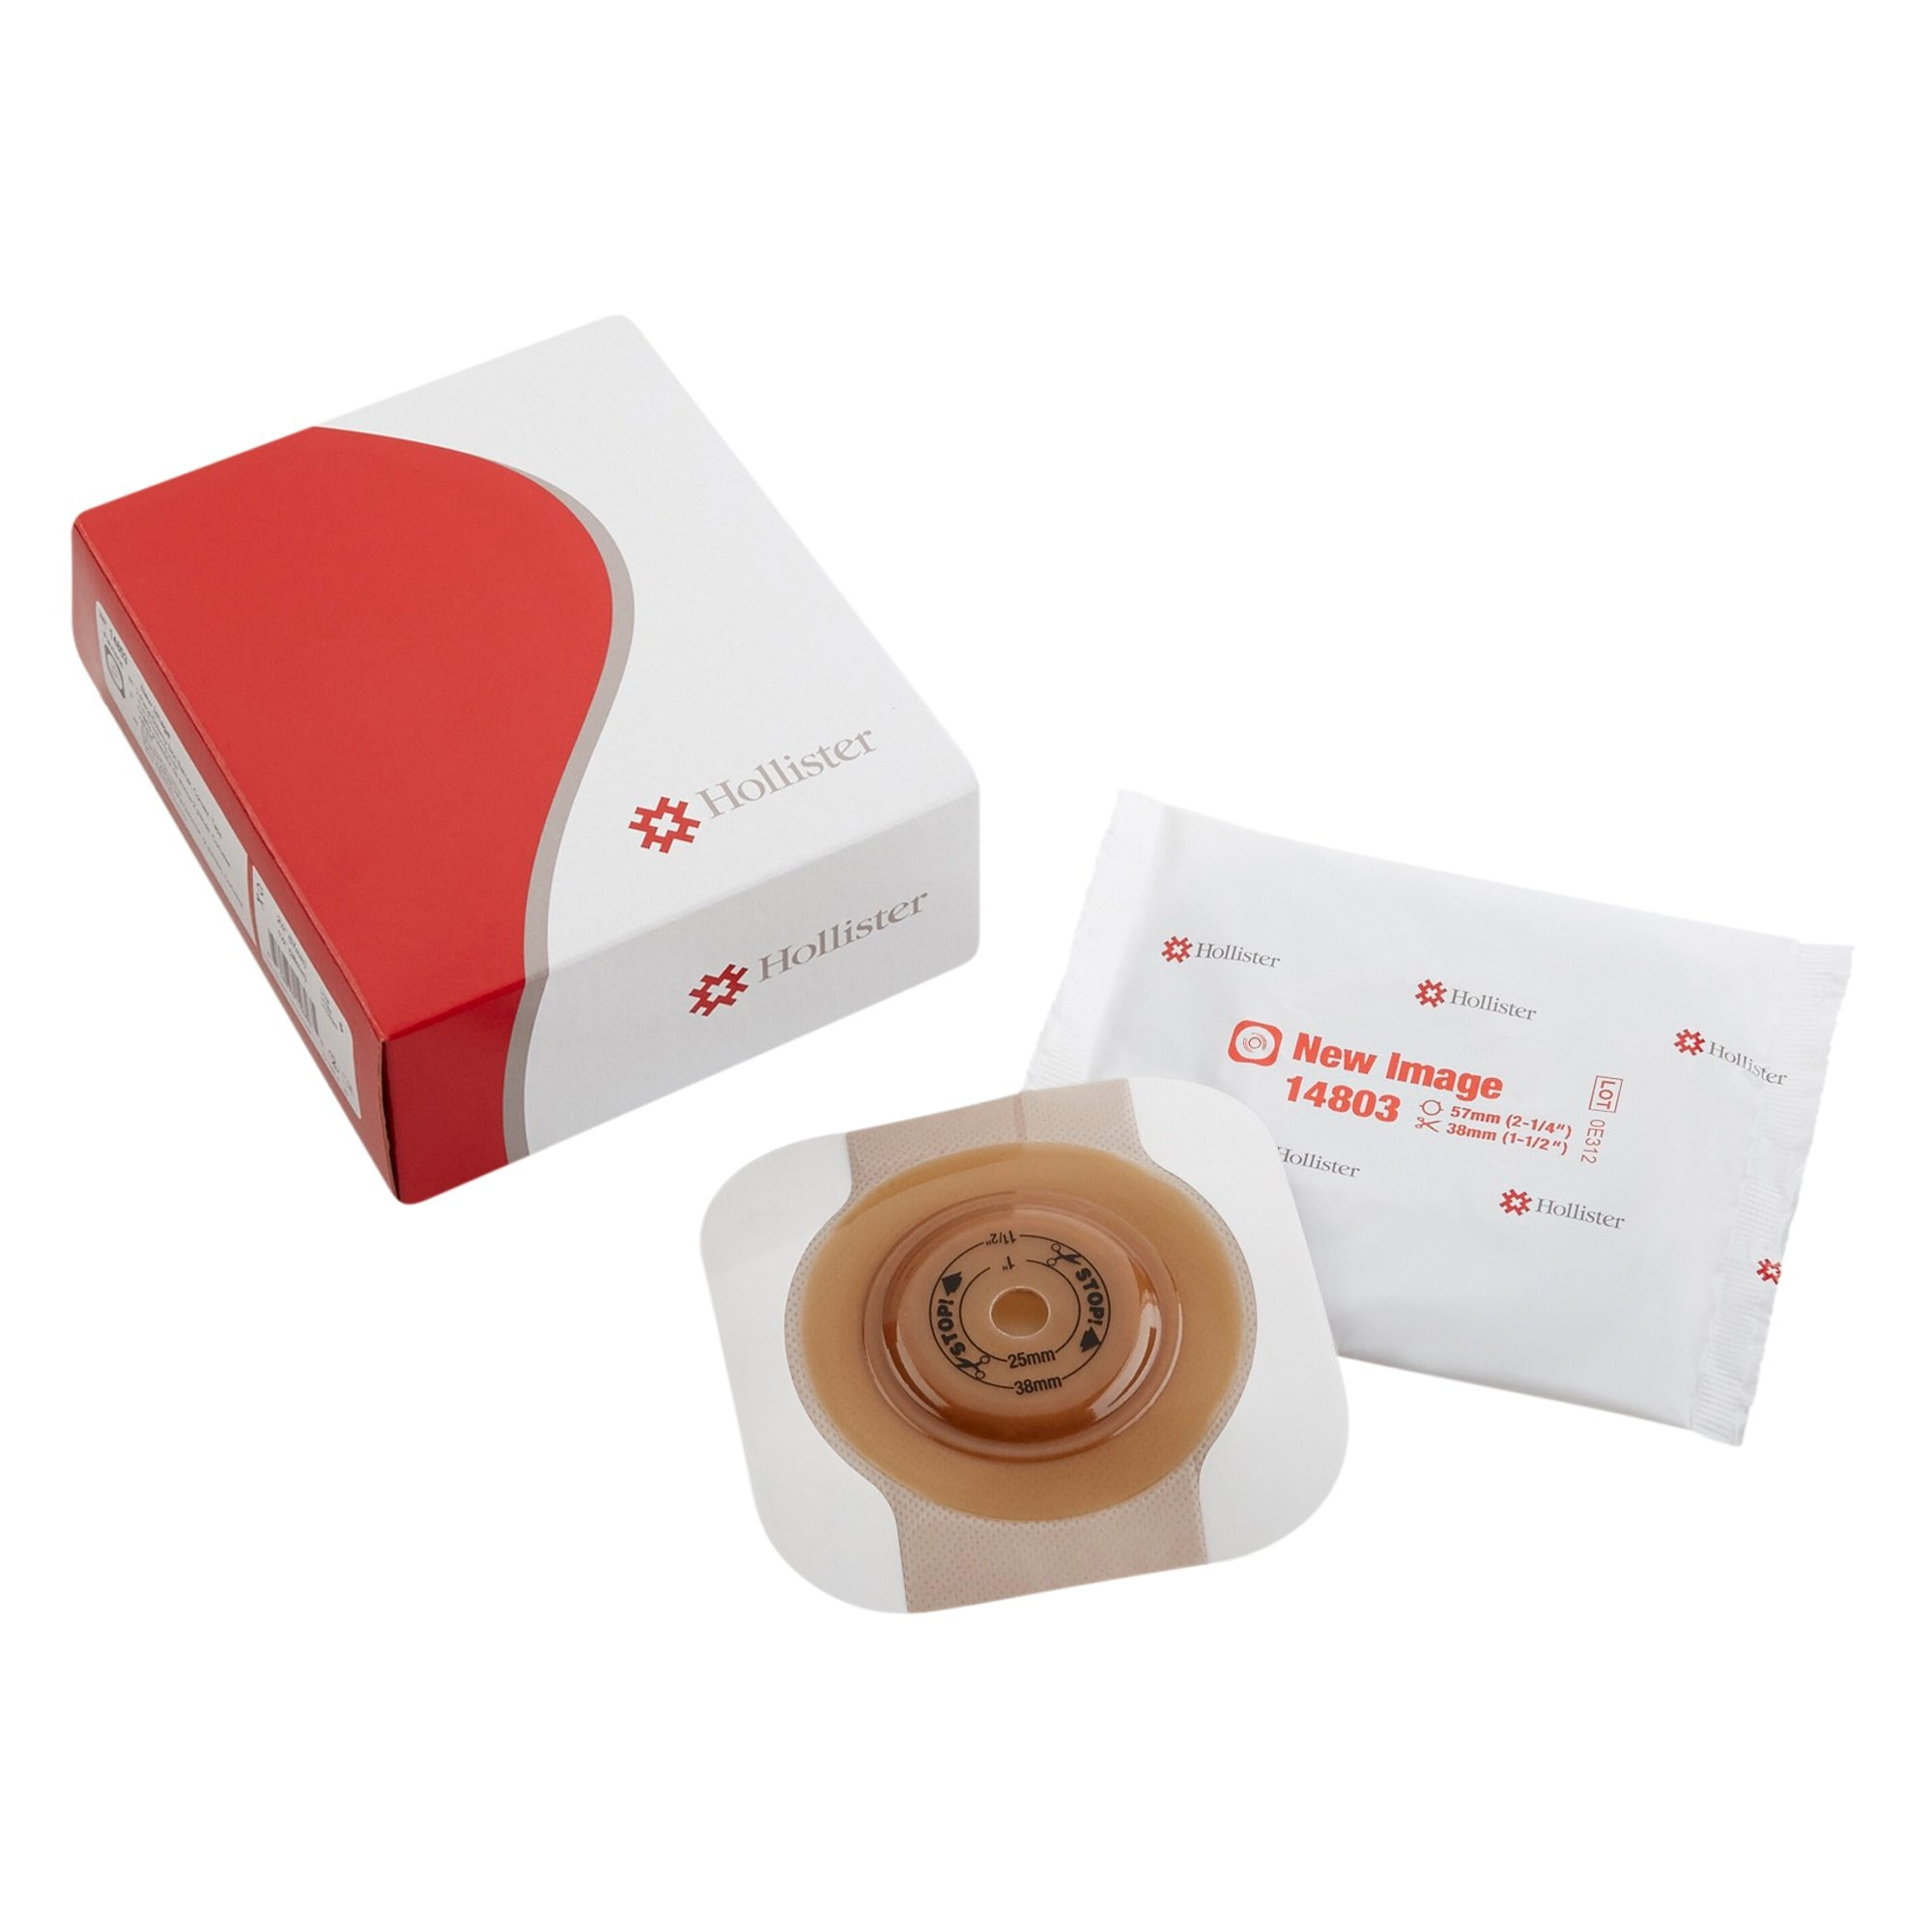 """Hollister FlexTend Ostomy Barrier, Trim to Fit, Extended Wear, 2.75"""", Fits Stomas up to 1.5"""", 14803, Box of 5"""